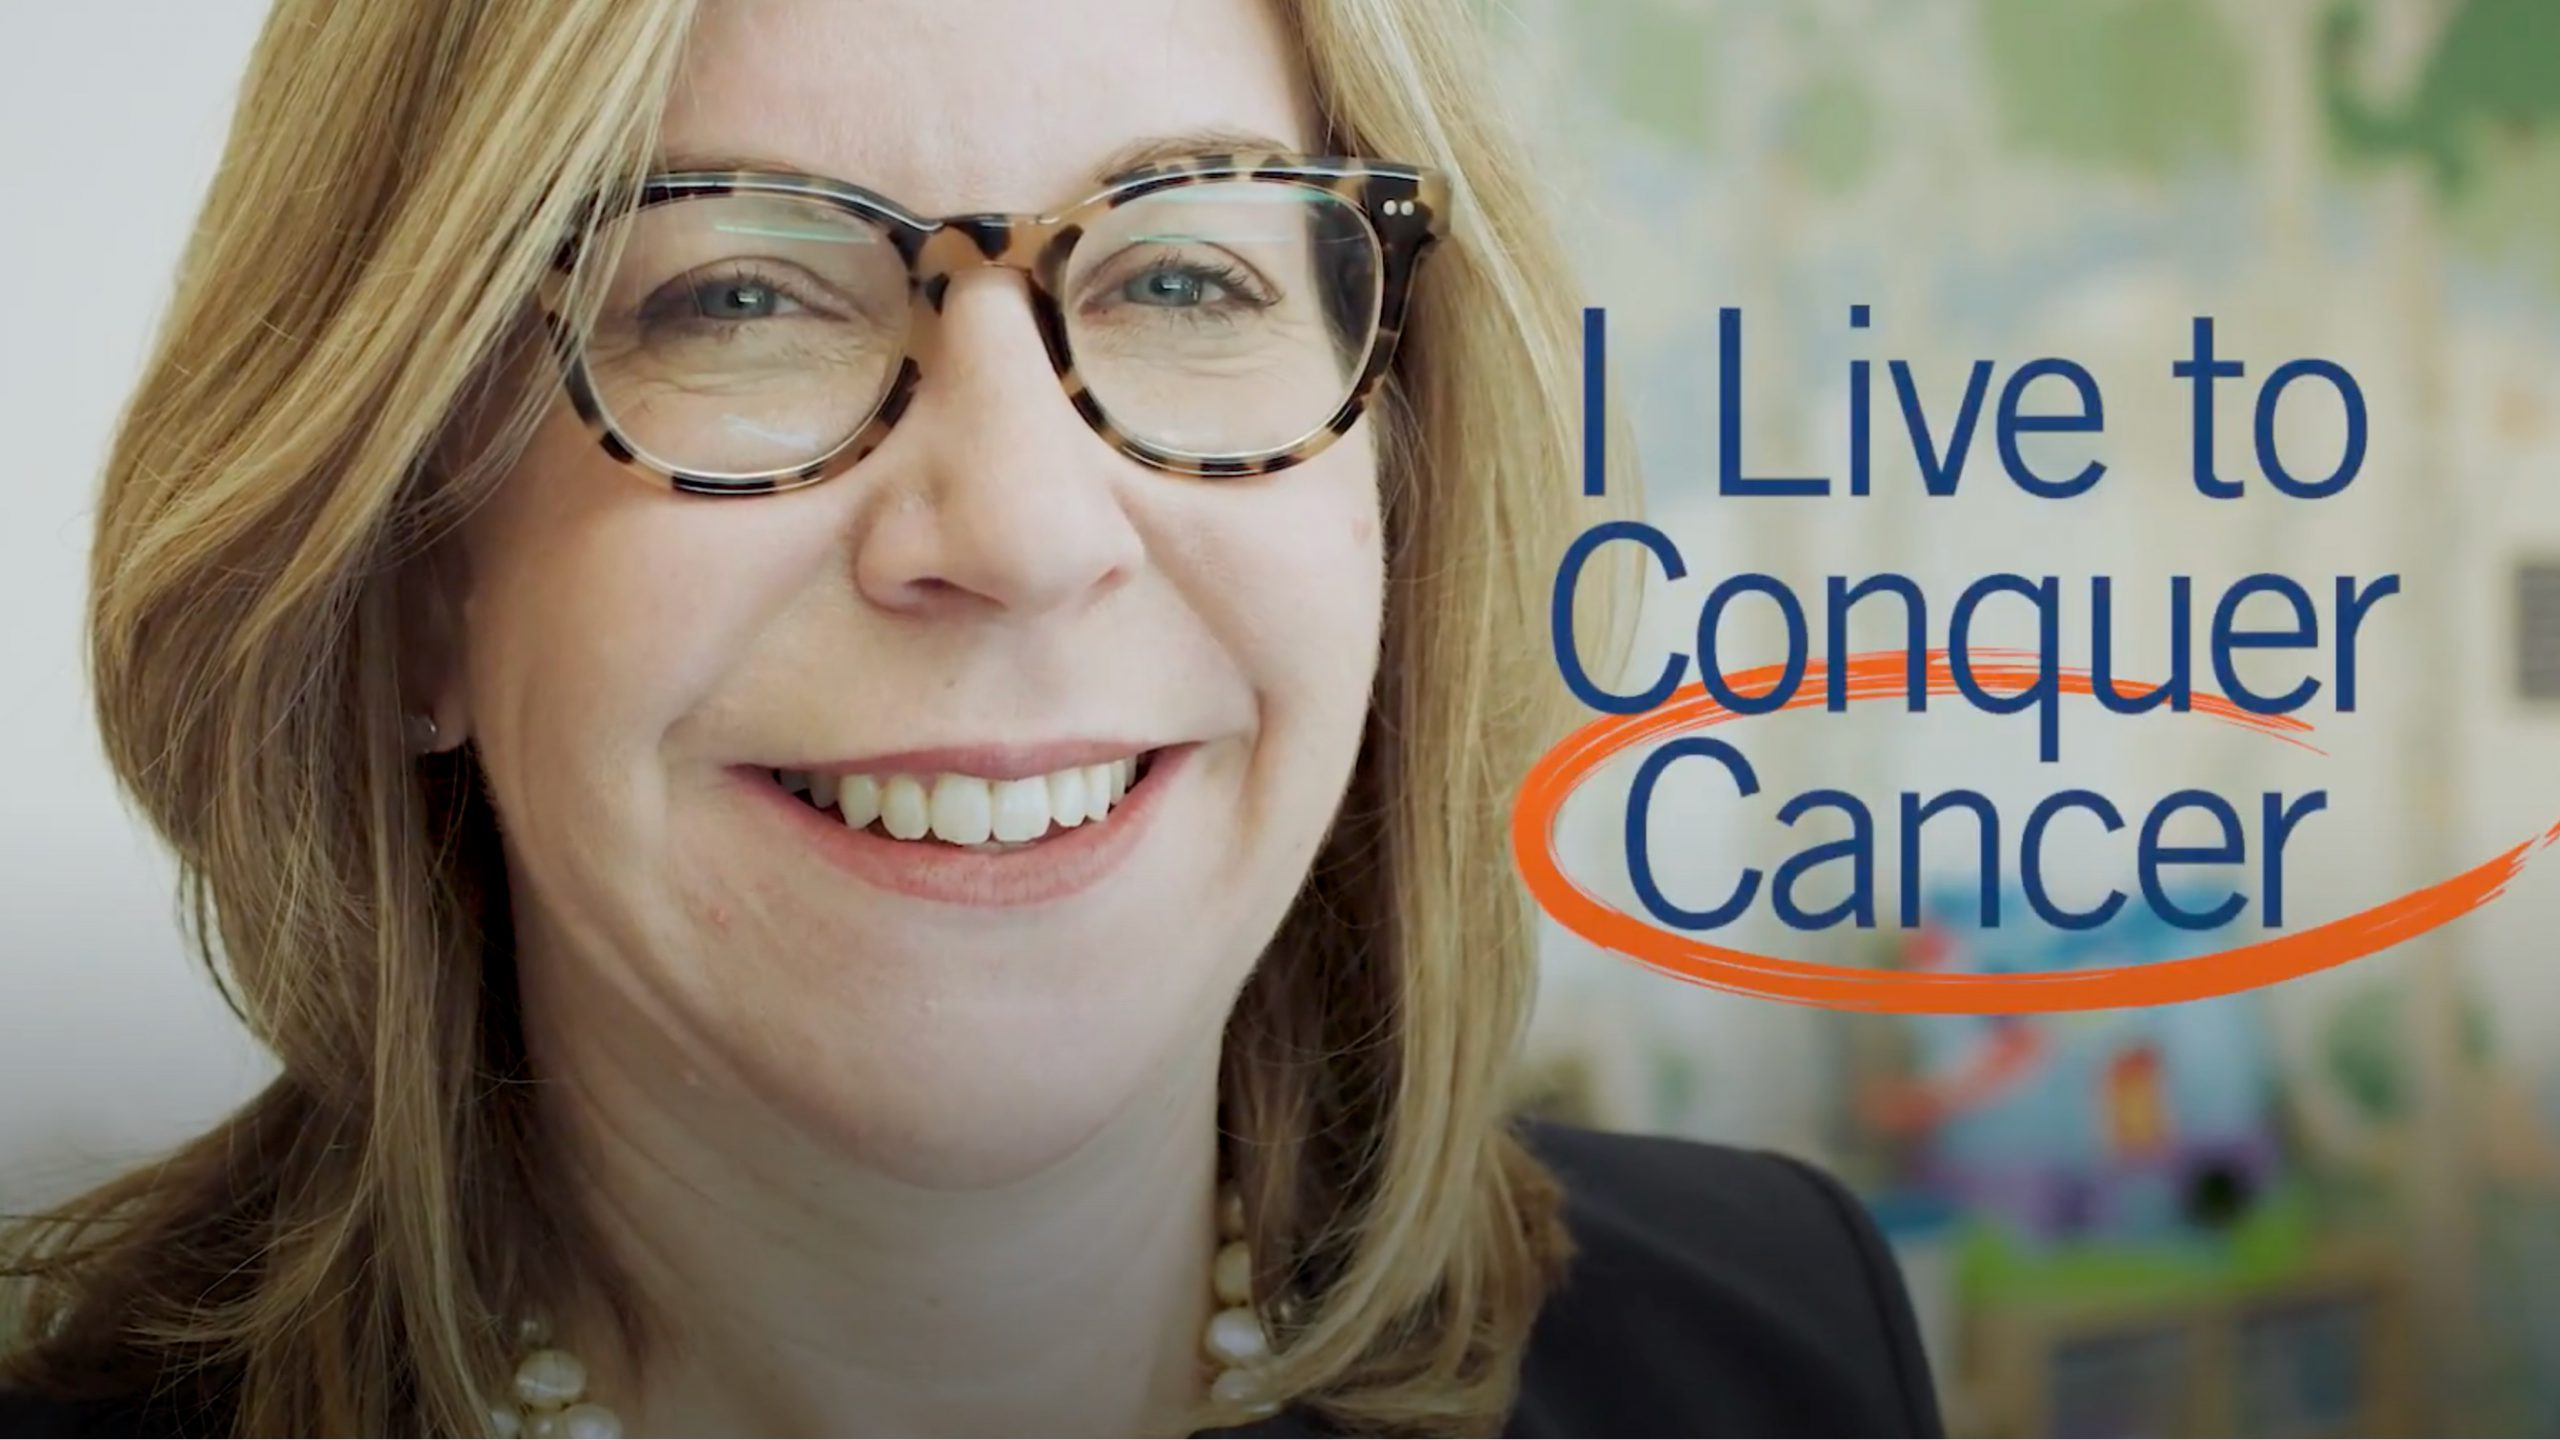 Cancer Association Leadership for American Society of Clinical Oncology (ASCO)